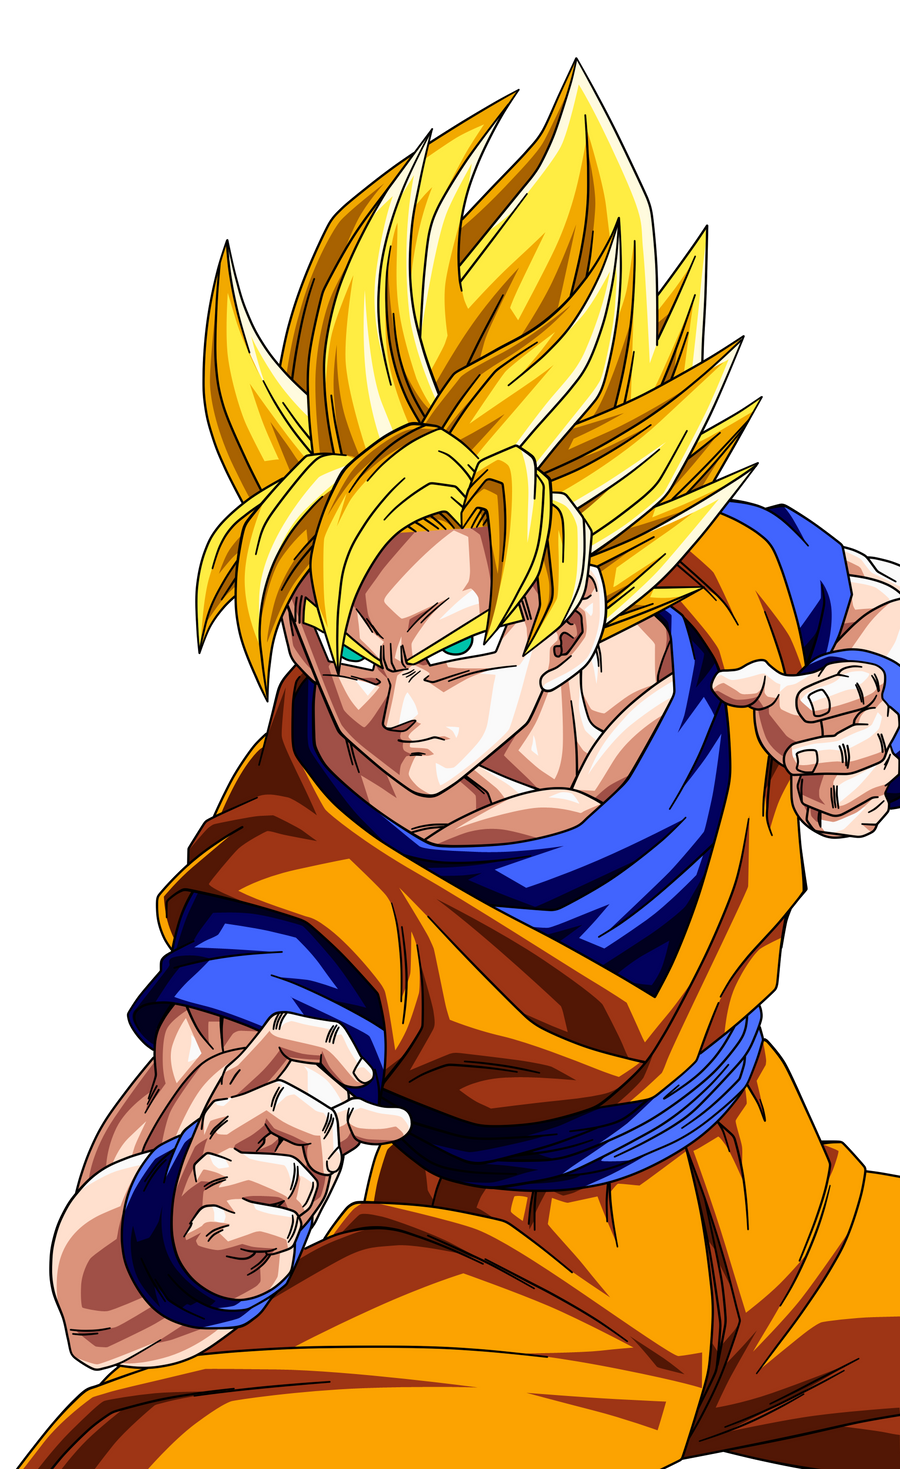 classify and place goku